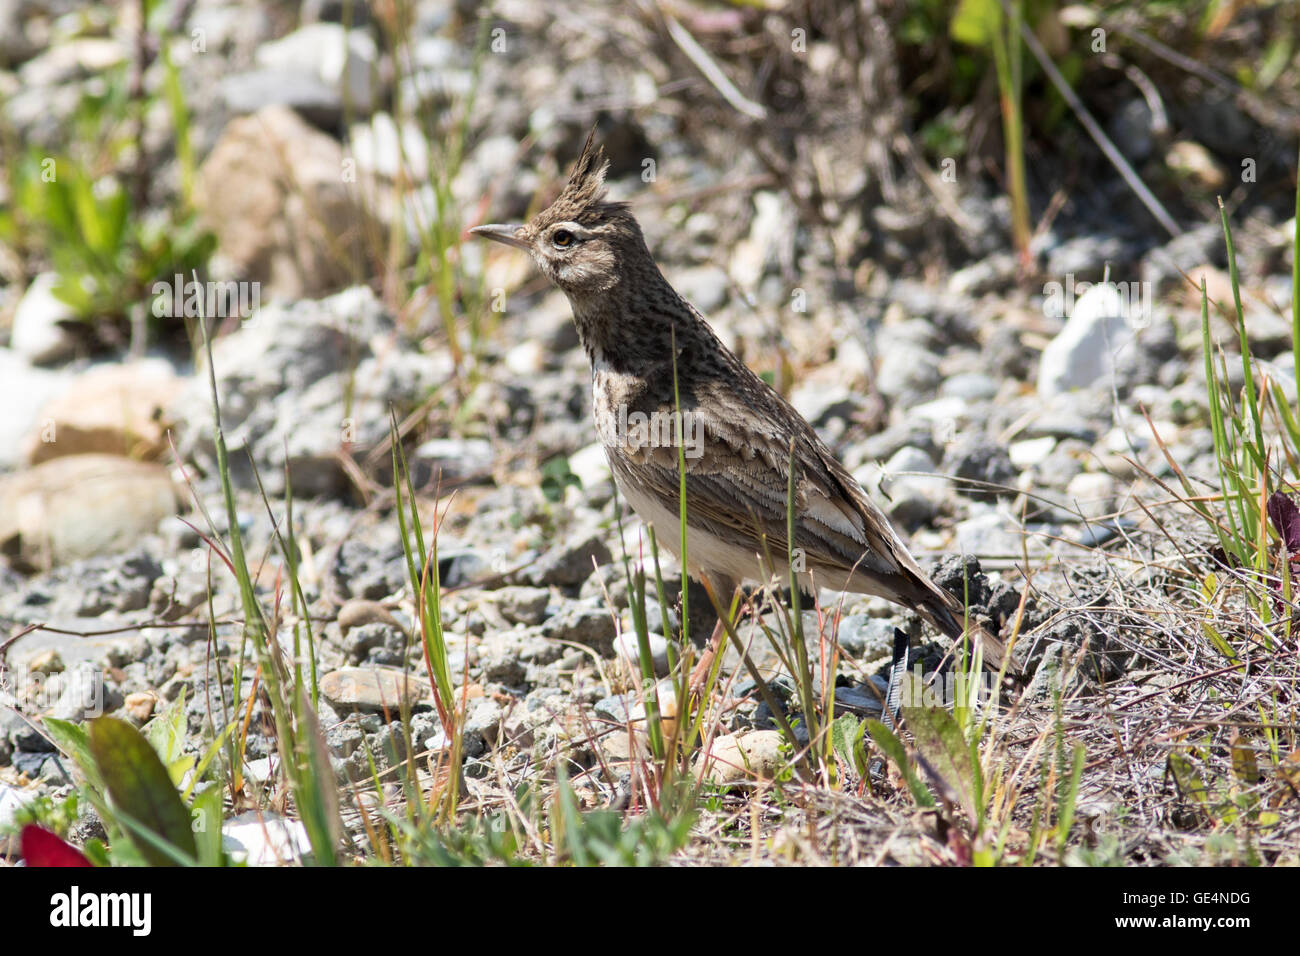 Crested Lark (Galerida cristata). Russia, Sochi (Adler). Stock Photo